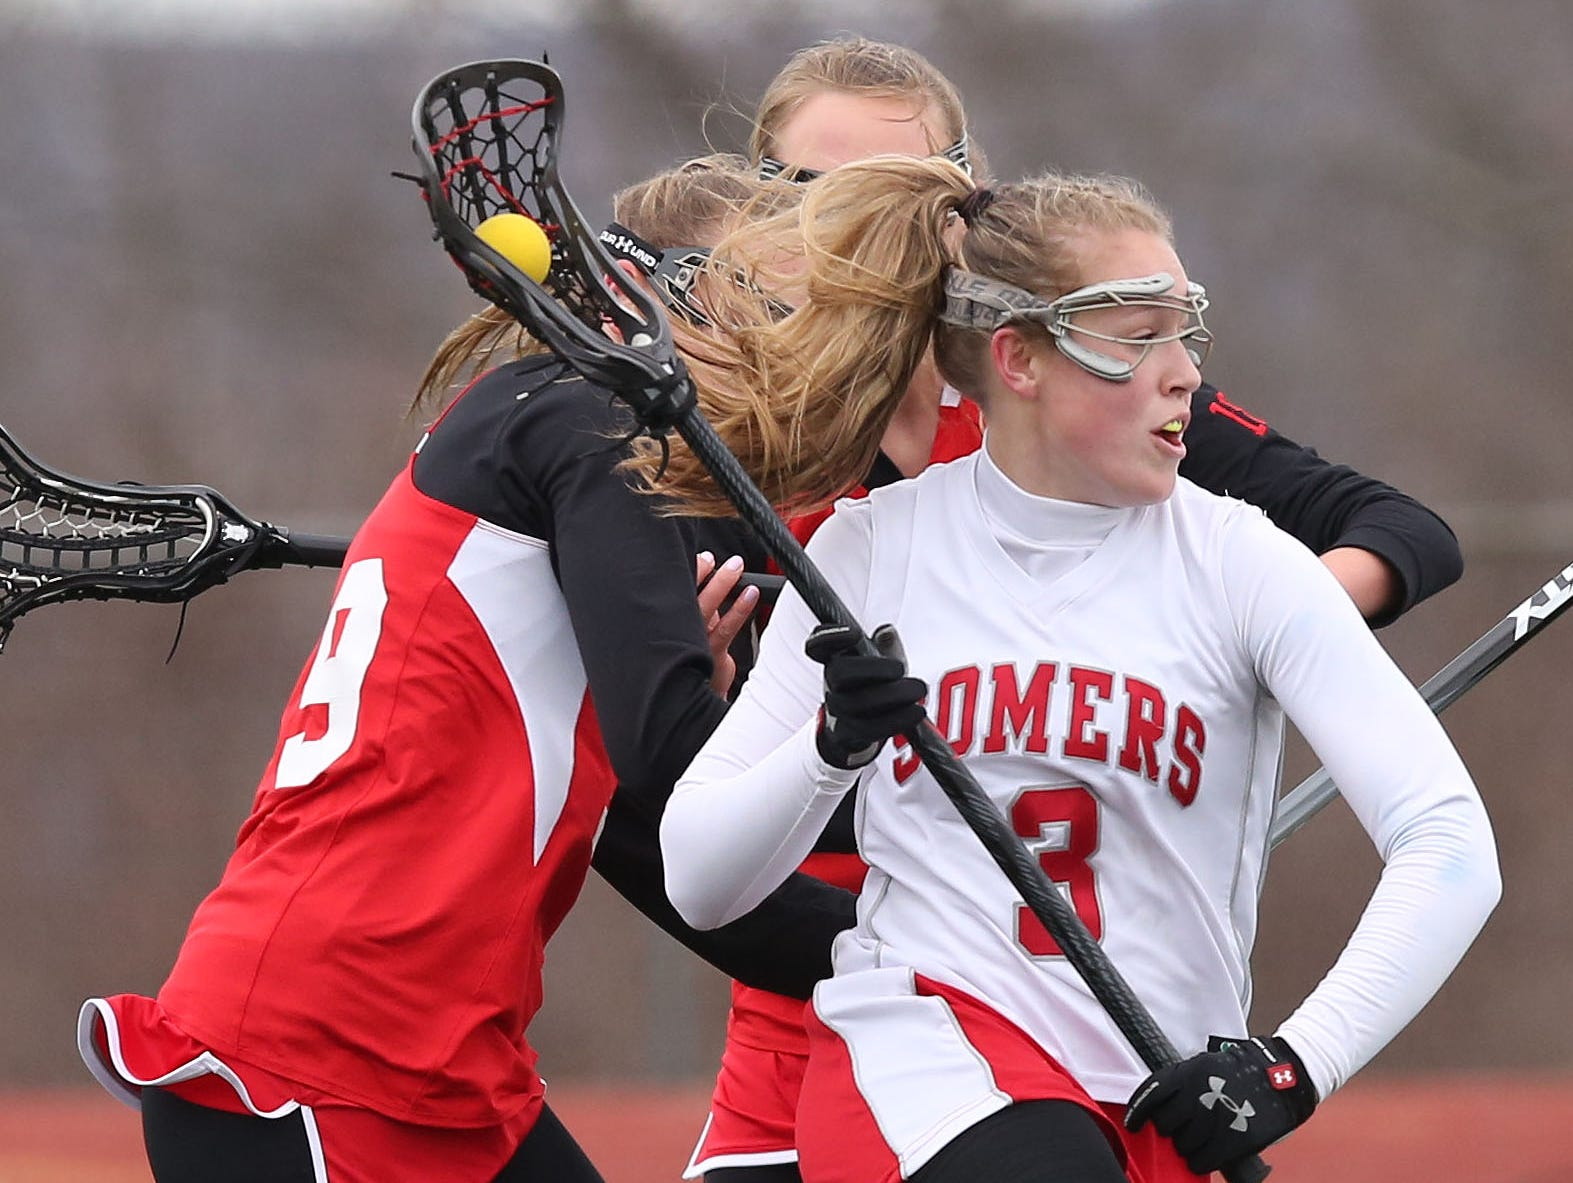 Somers' Gabby Rosenzweig (3) drives to the goal against Fox Lane during a girls lacrosse game at Somers High School April 8, 2016. Somers won the game 15-12.